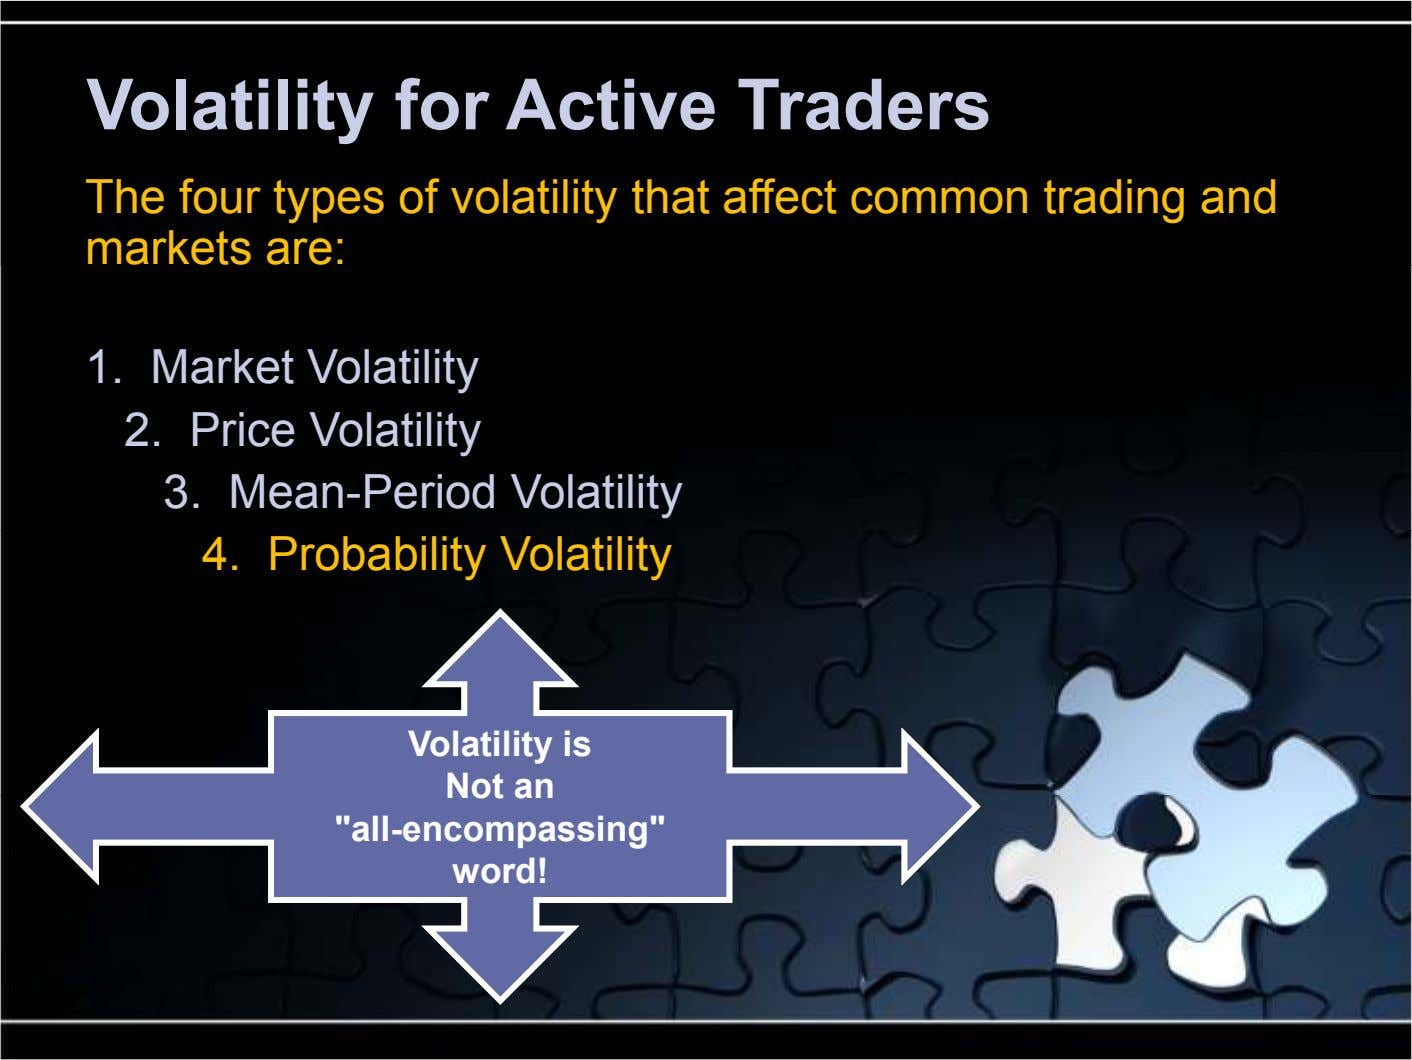 Volatility for Active Traders The four types of volatility that affect common trading and markets are: